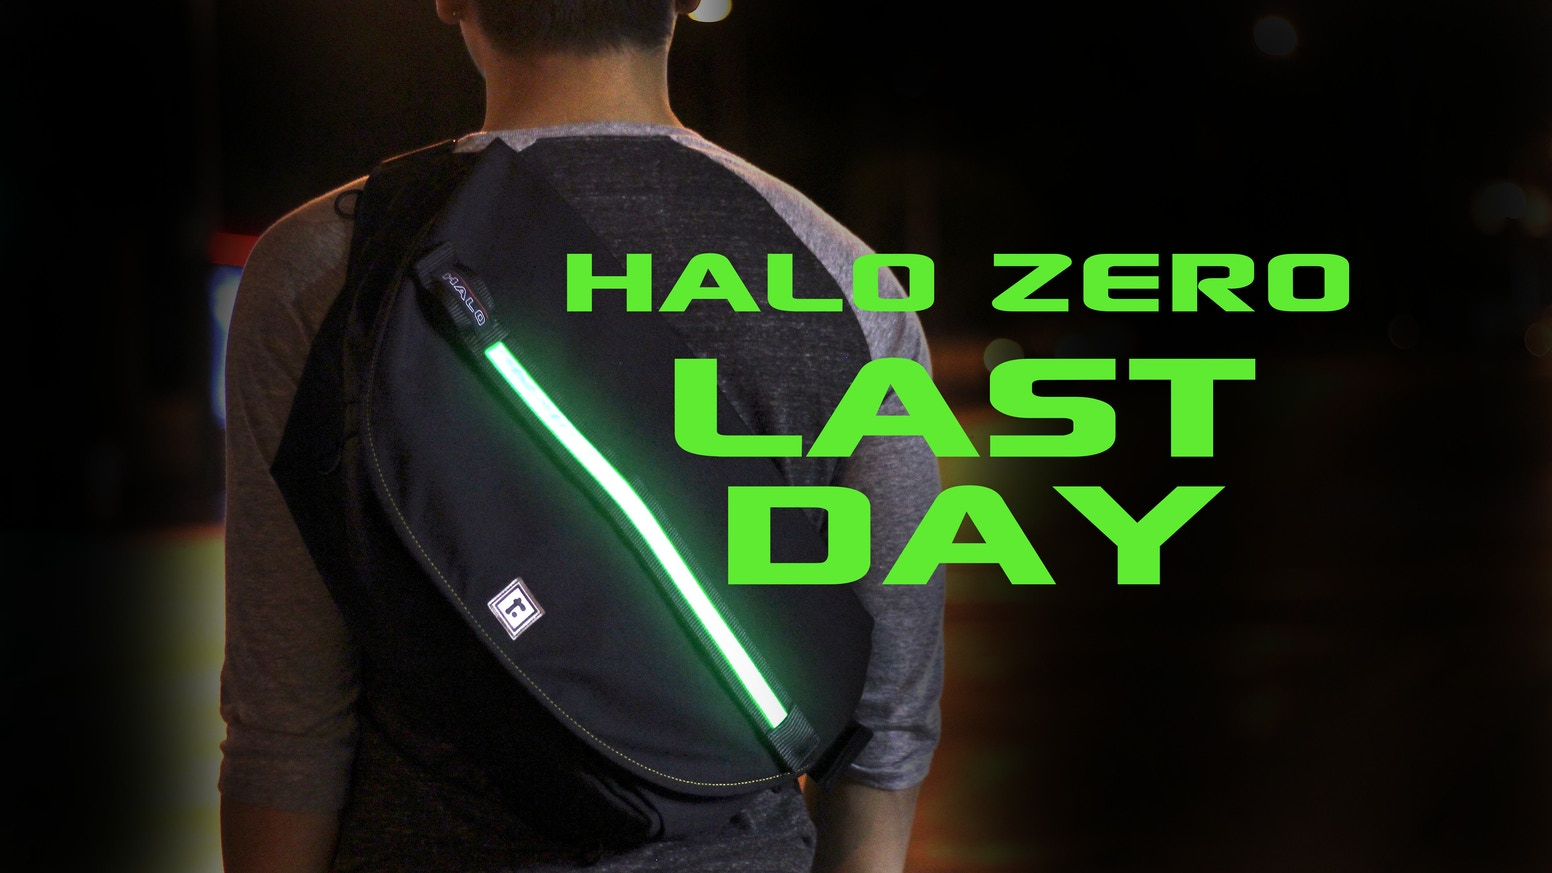 Mission: SAVE LIVES. HALO ZERO messenger bag illuminates at night, keeping safety just a click away.